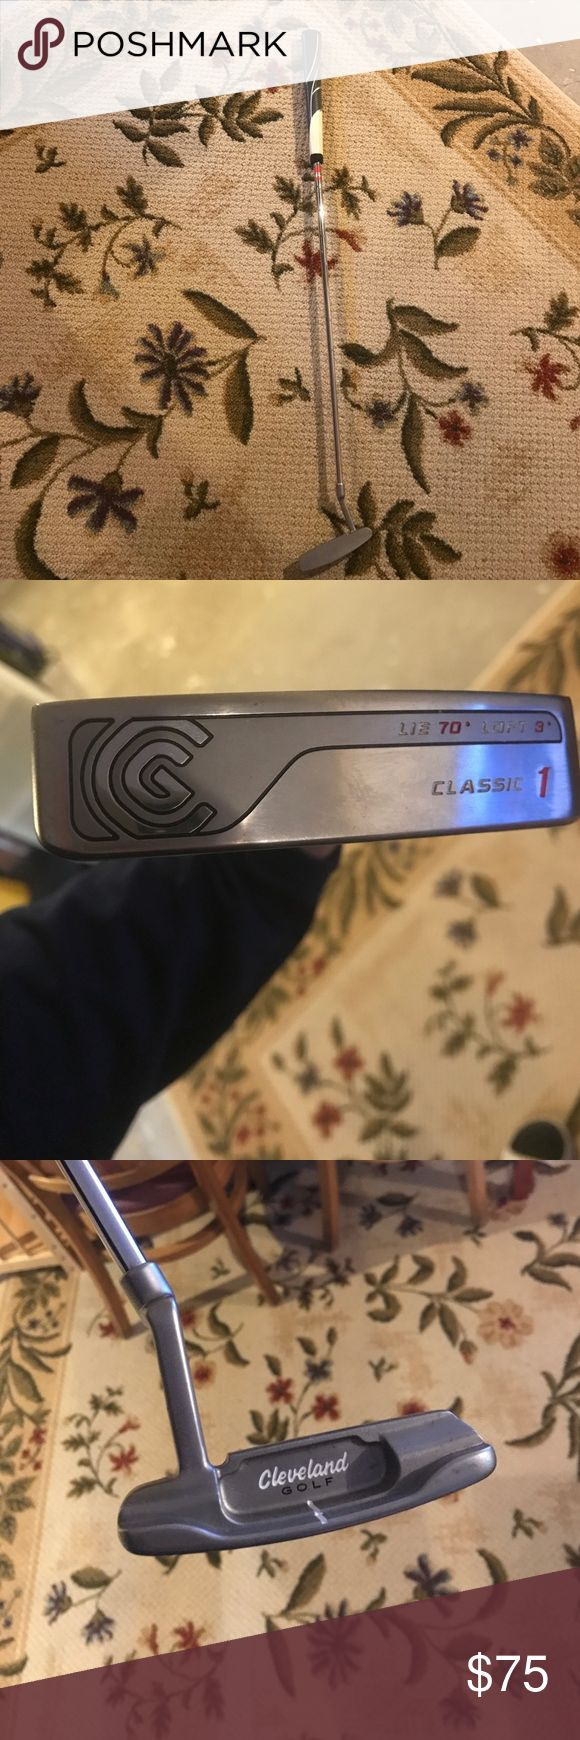 Cleveland putter with super sized Winn grip Cleveland golf putter, with super sized Winn grip, excellent condition, barely used. Cleveland Golf Other